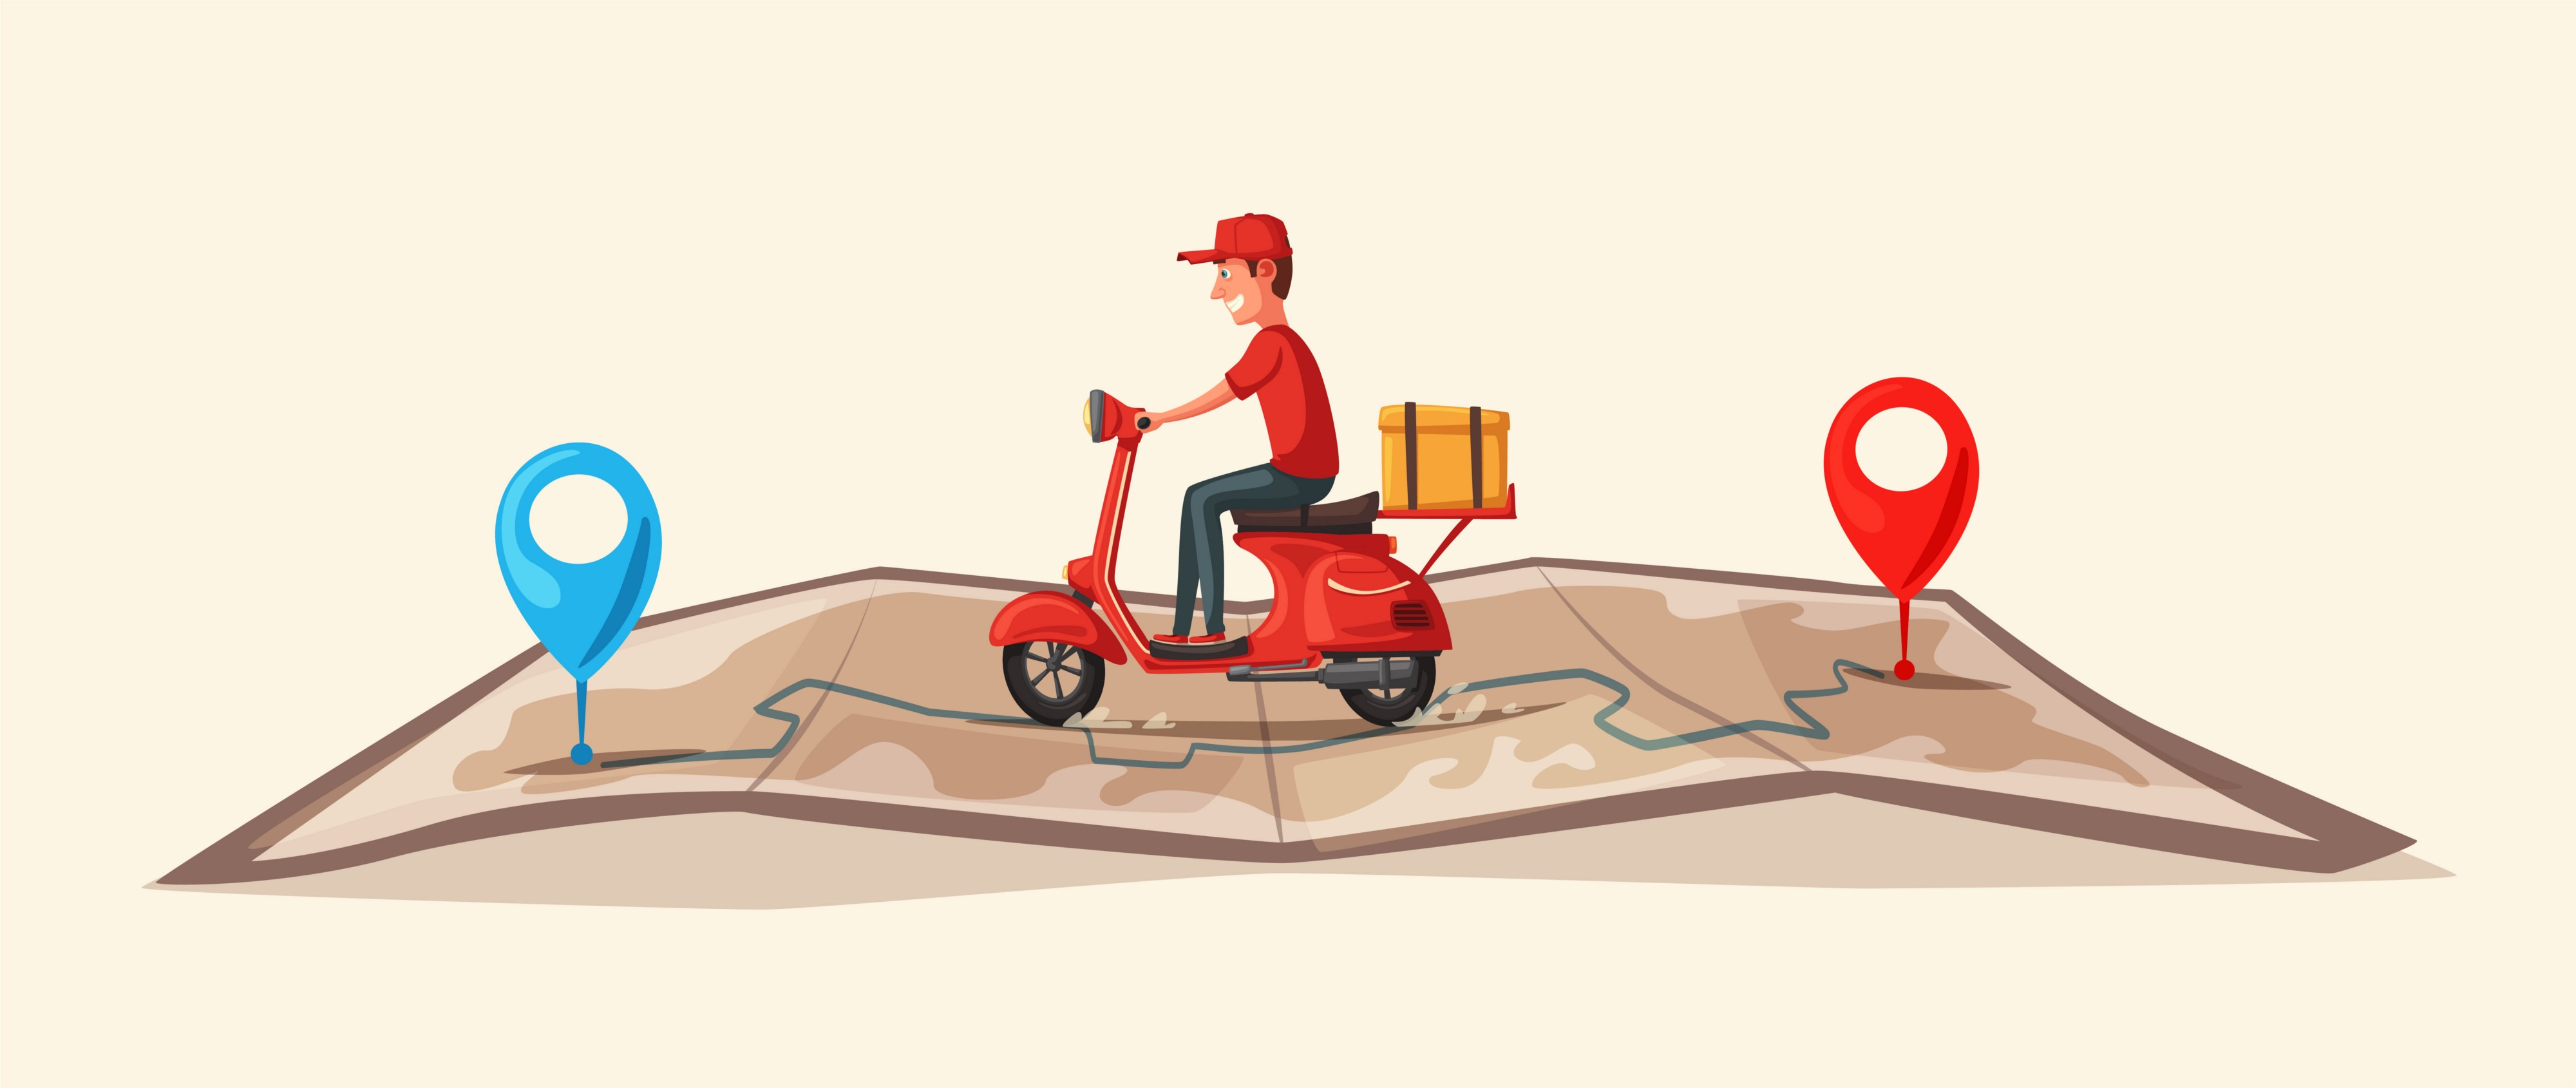 Has COVID-19 Flourished the Delivery Services Industry?